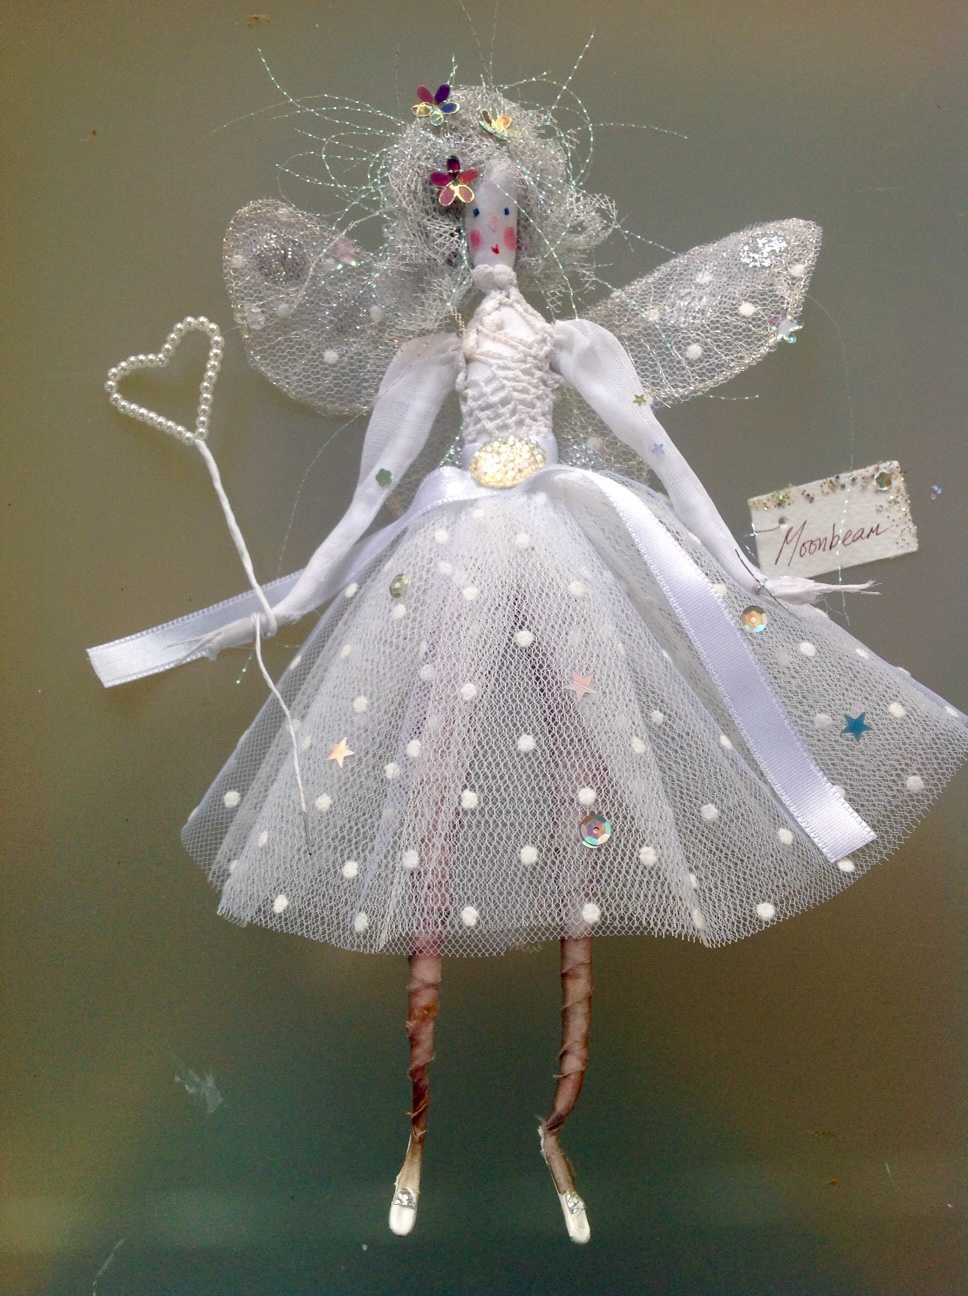 MOONBEAM , a 22cm fairy wearing a vintage lace and cotton organdie top with a stiff net and spotted flocked skirt. She has a sparkly jewel at her waist, has embroidered wings and is holding a pearl wand.She comes in an organza bag with dried flower petals in it . £40 plus £2.50 p&p